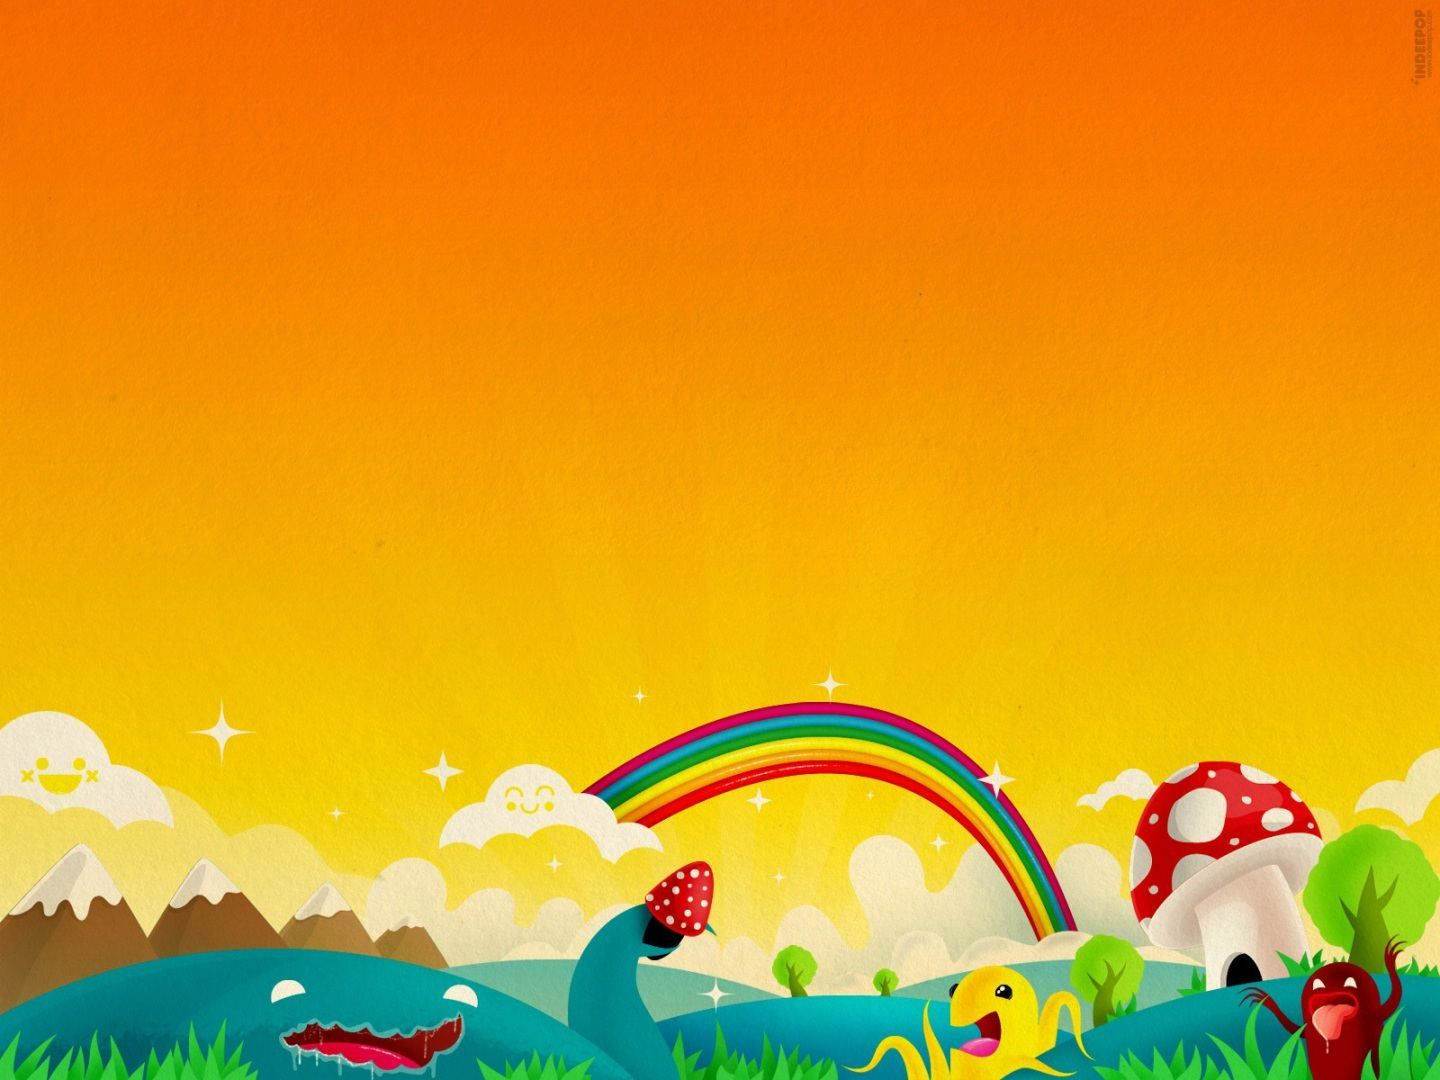 Colorful Cartoon Wallpapers for kids Backgrounds in HD For